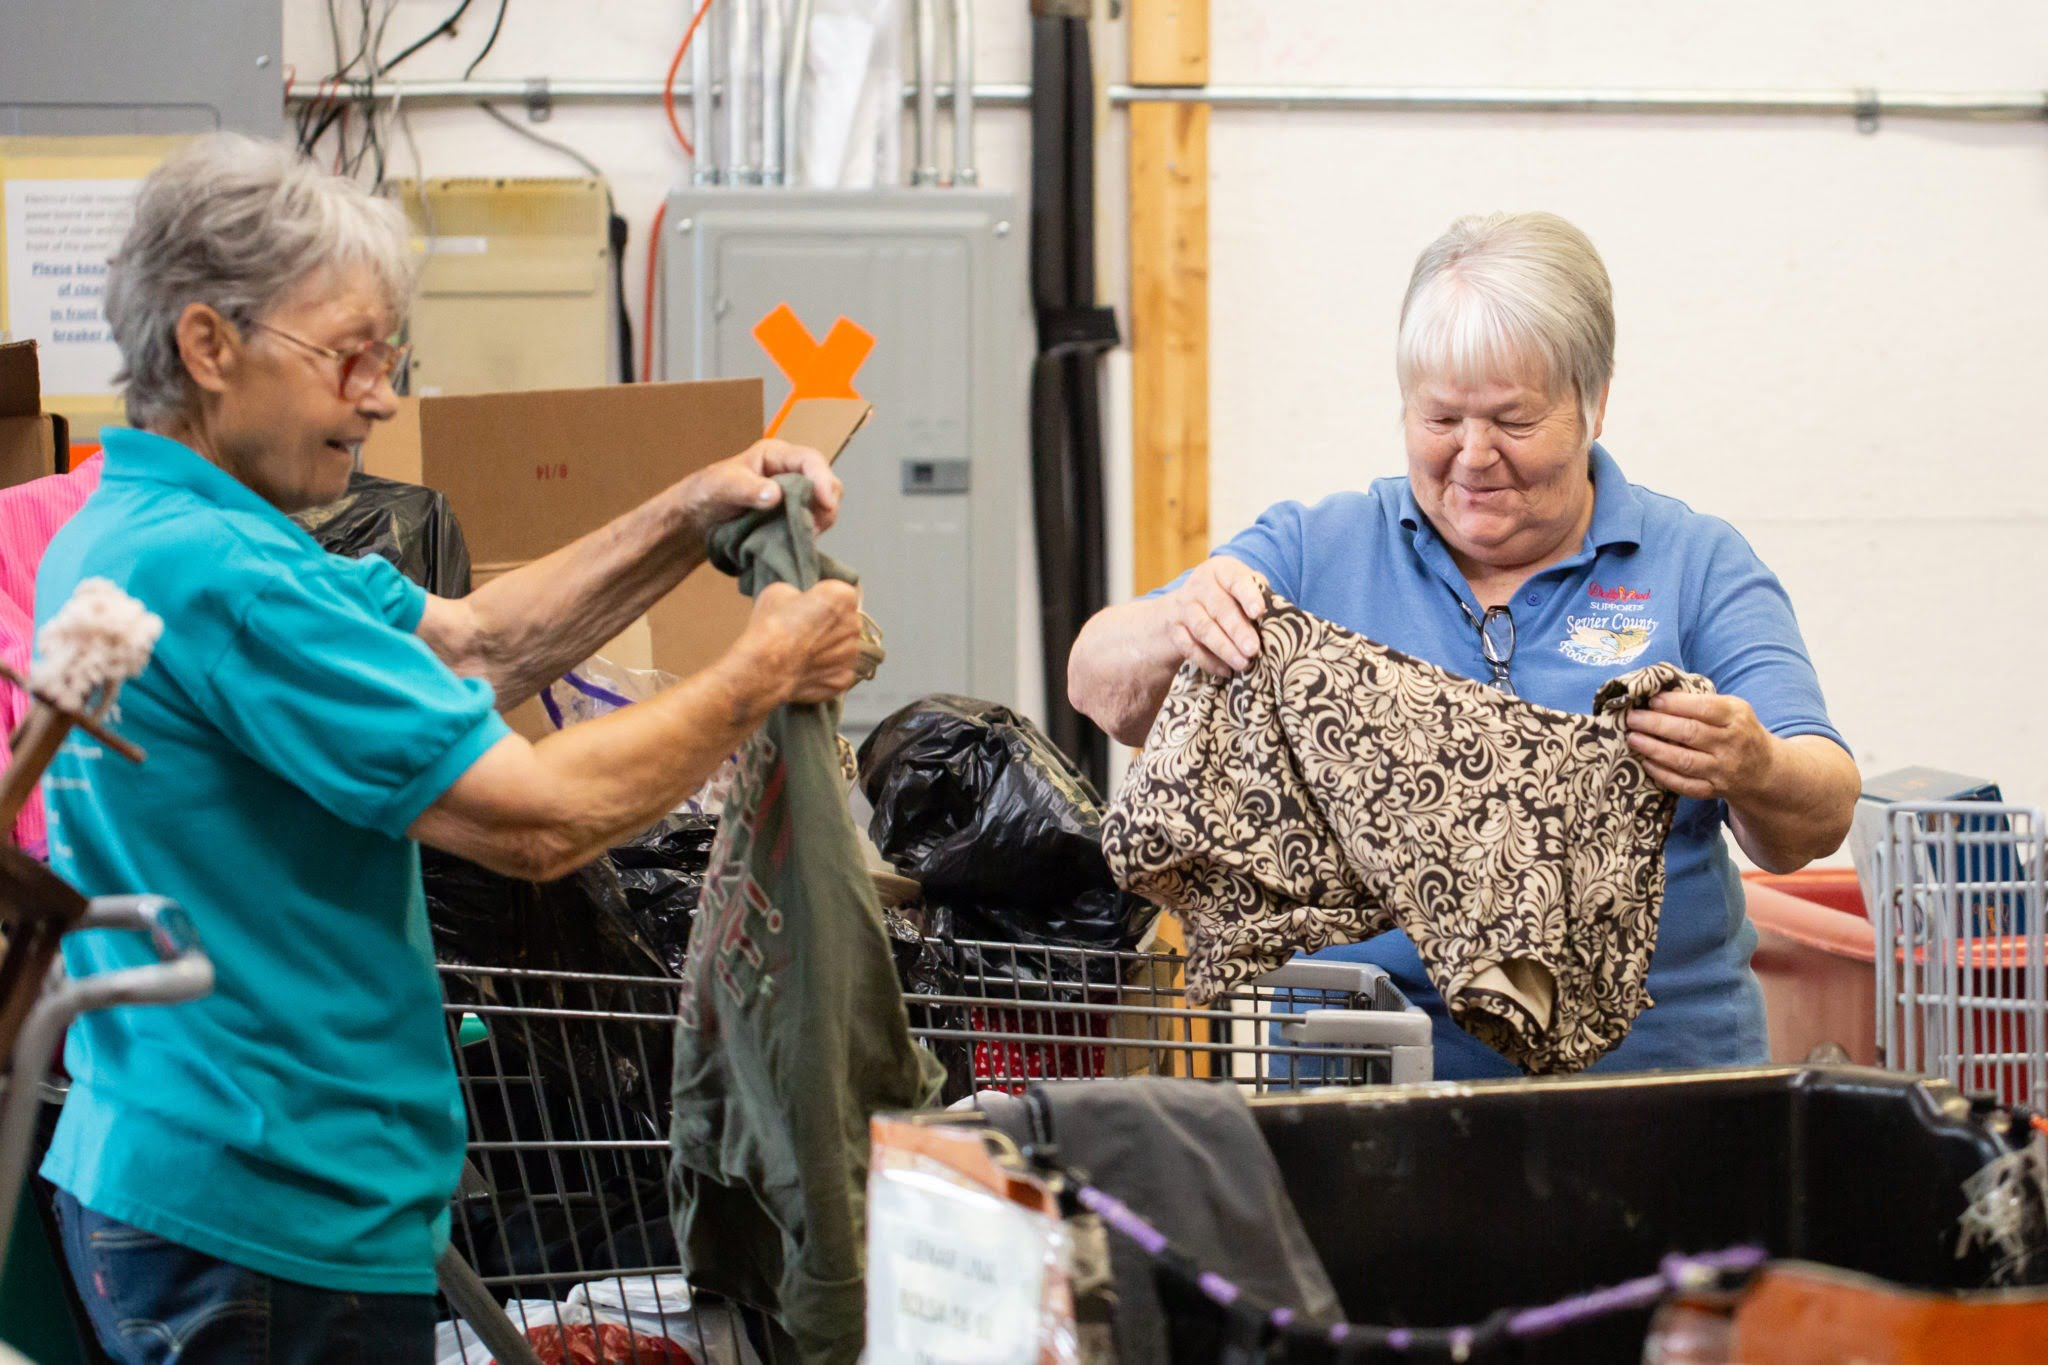 <b>Thrift Store</b><br> There are several ways that you can help in our thrift store. Thrift store volunteers act as cashiers, pricers, stockers and are responsible for sorting clothing and household items.